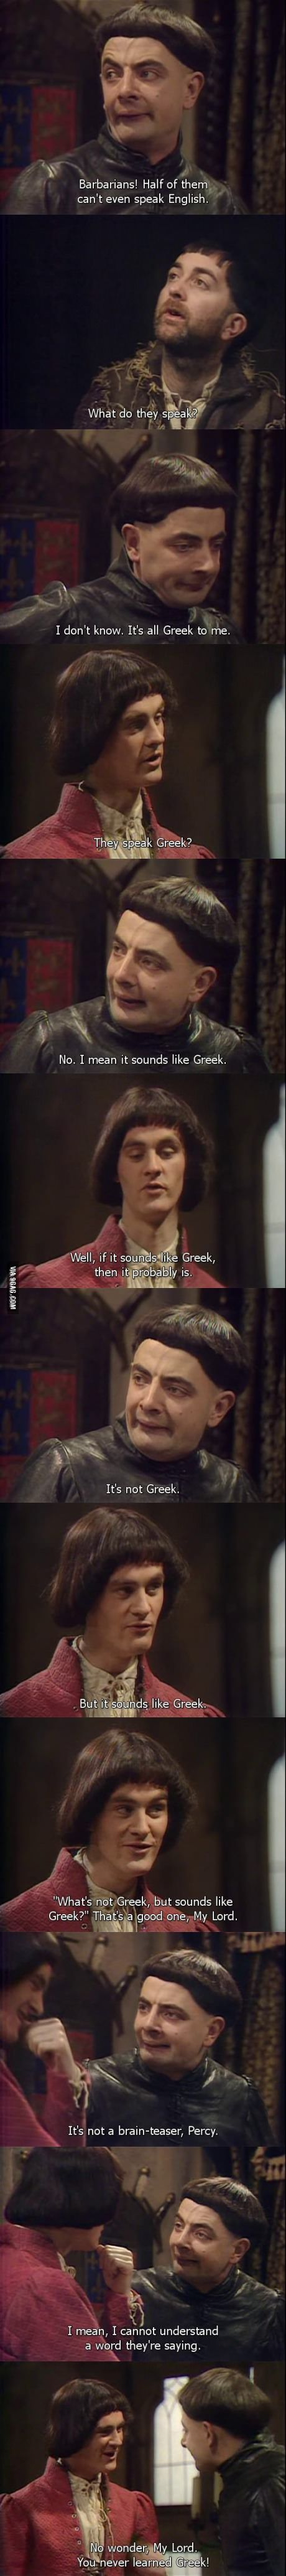 Why does no one remember rowan Atkinson for his role in black adder!?